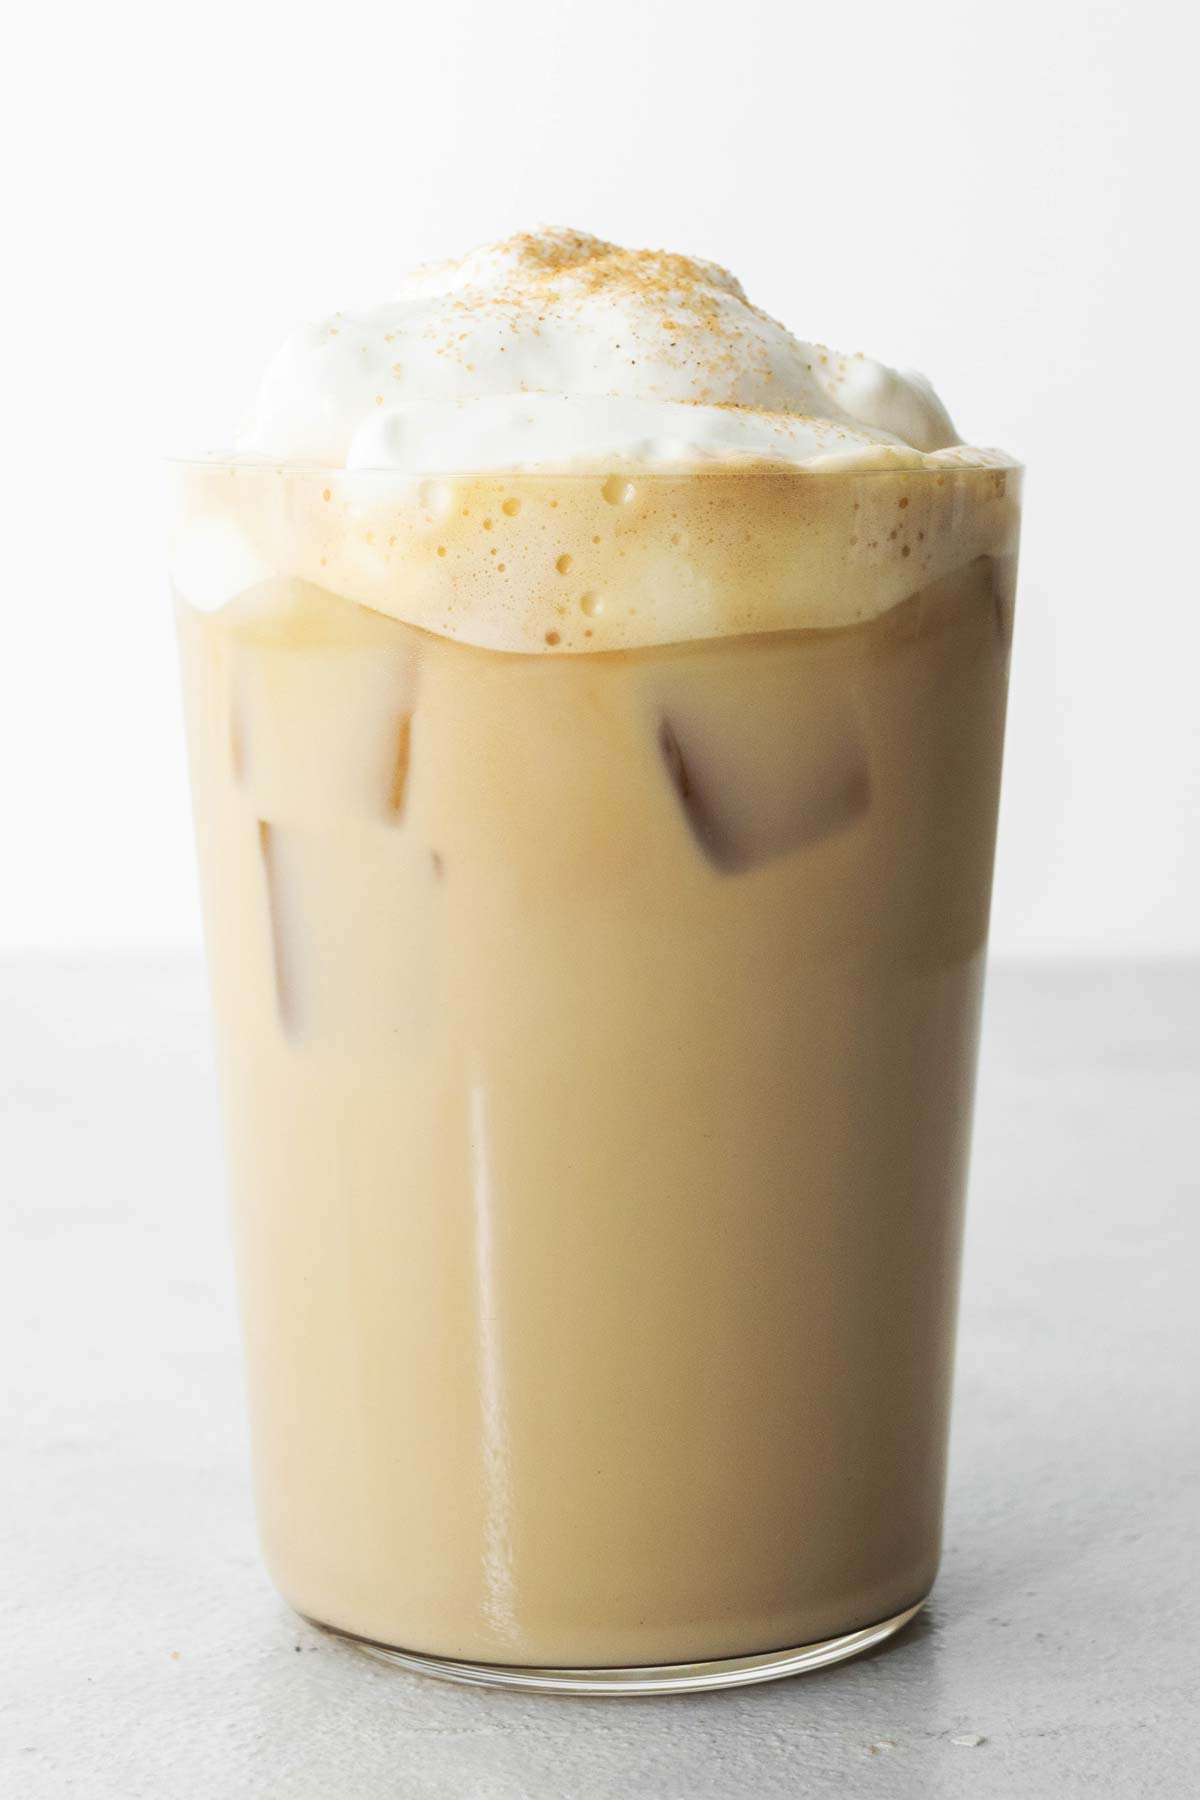 Starbucks Iced Cinnamon Dolce Latte copycat drink in a cup with whipped cream.